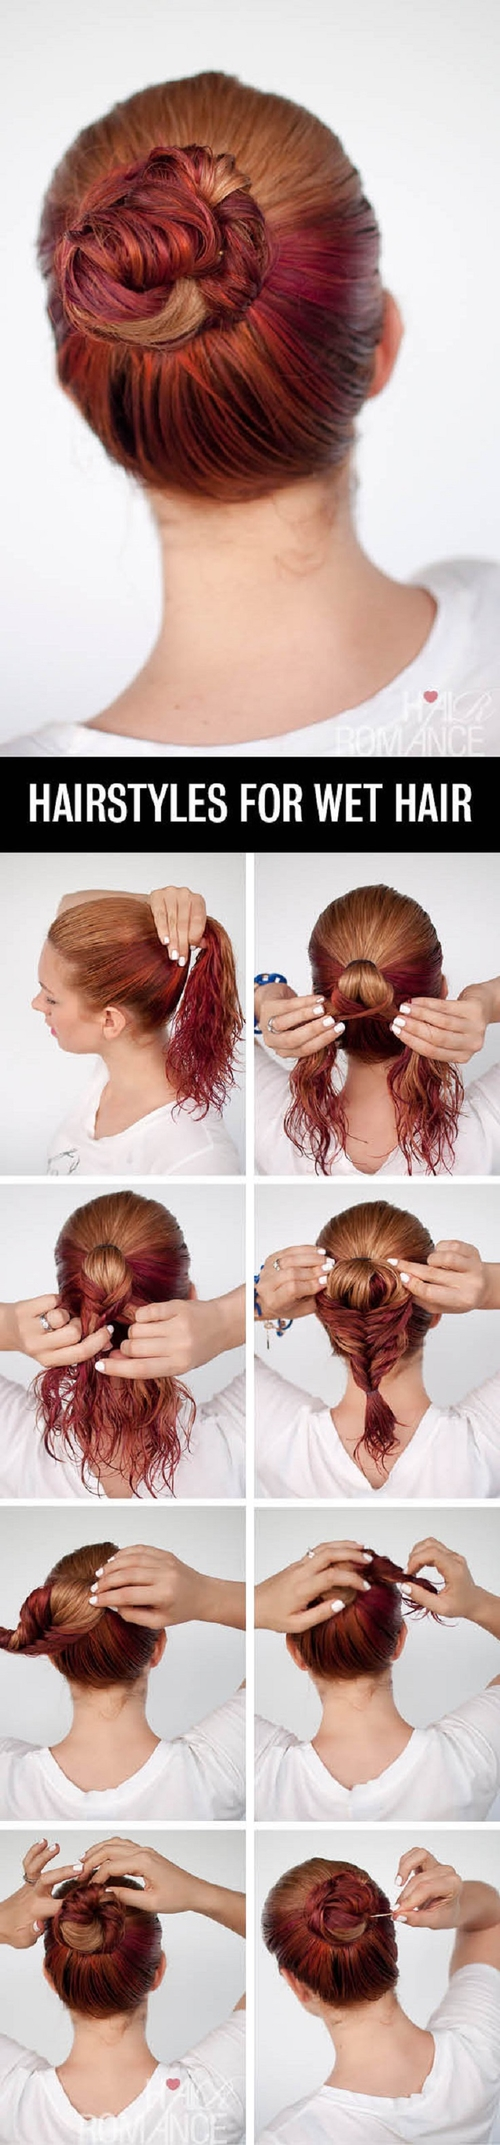 Fast ways to make a wet hairstyle wet hair hair style and quick